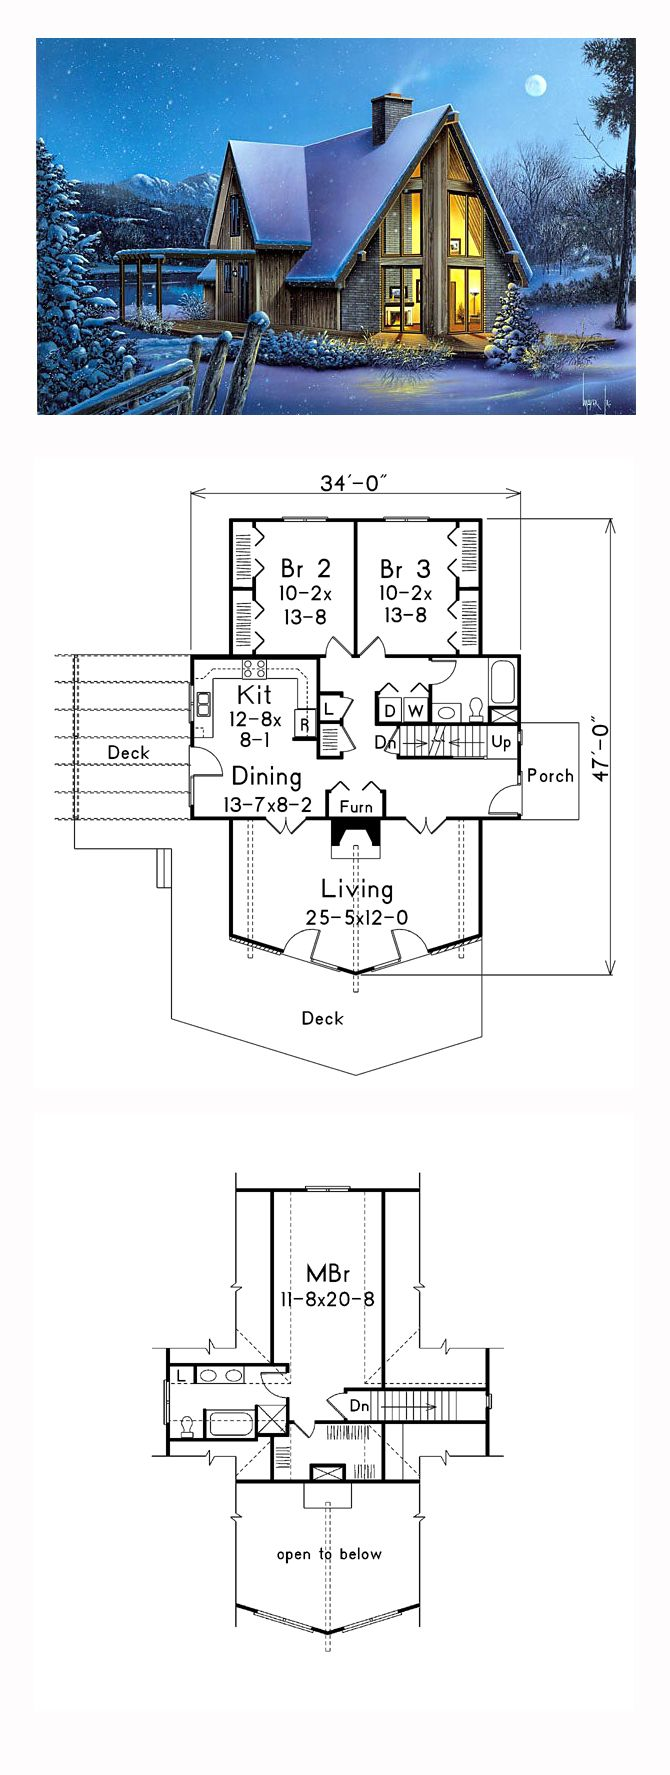 A Frame Style House Plan 87366 With 3 Bed 2 Bath A Frame House Plans A Frame House Best House Plans